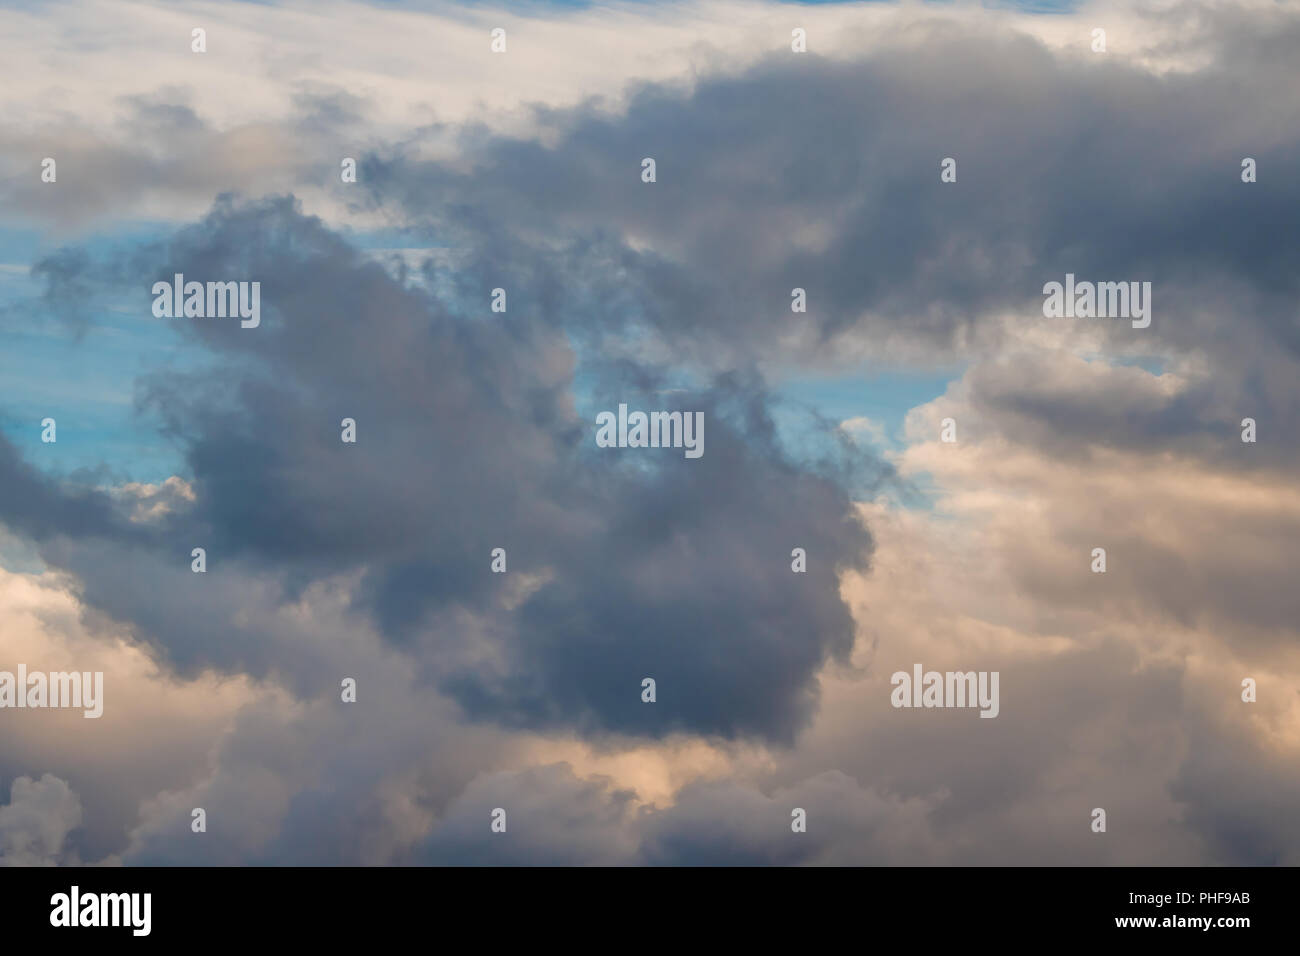 La formation de nuages sombres Photo Stock